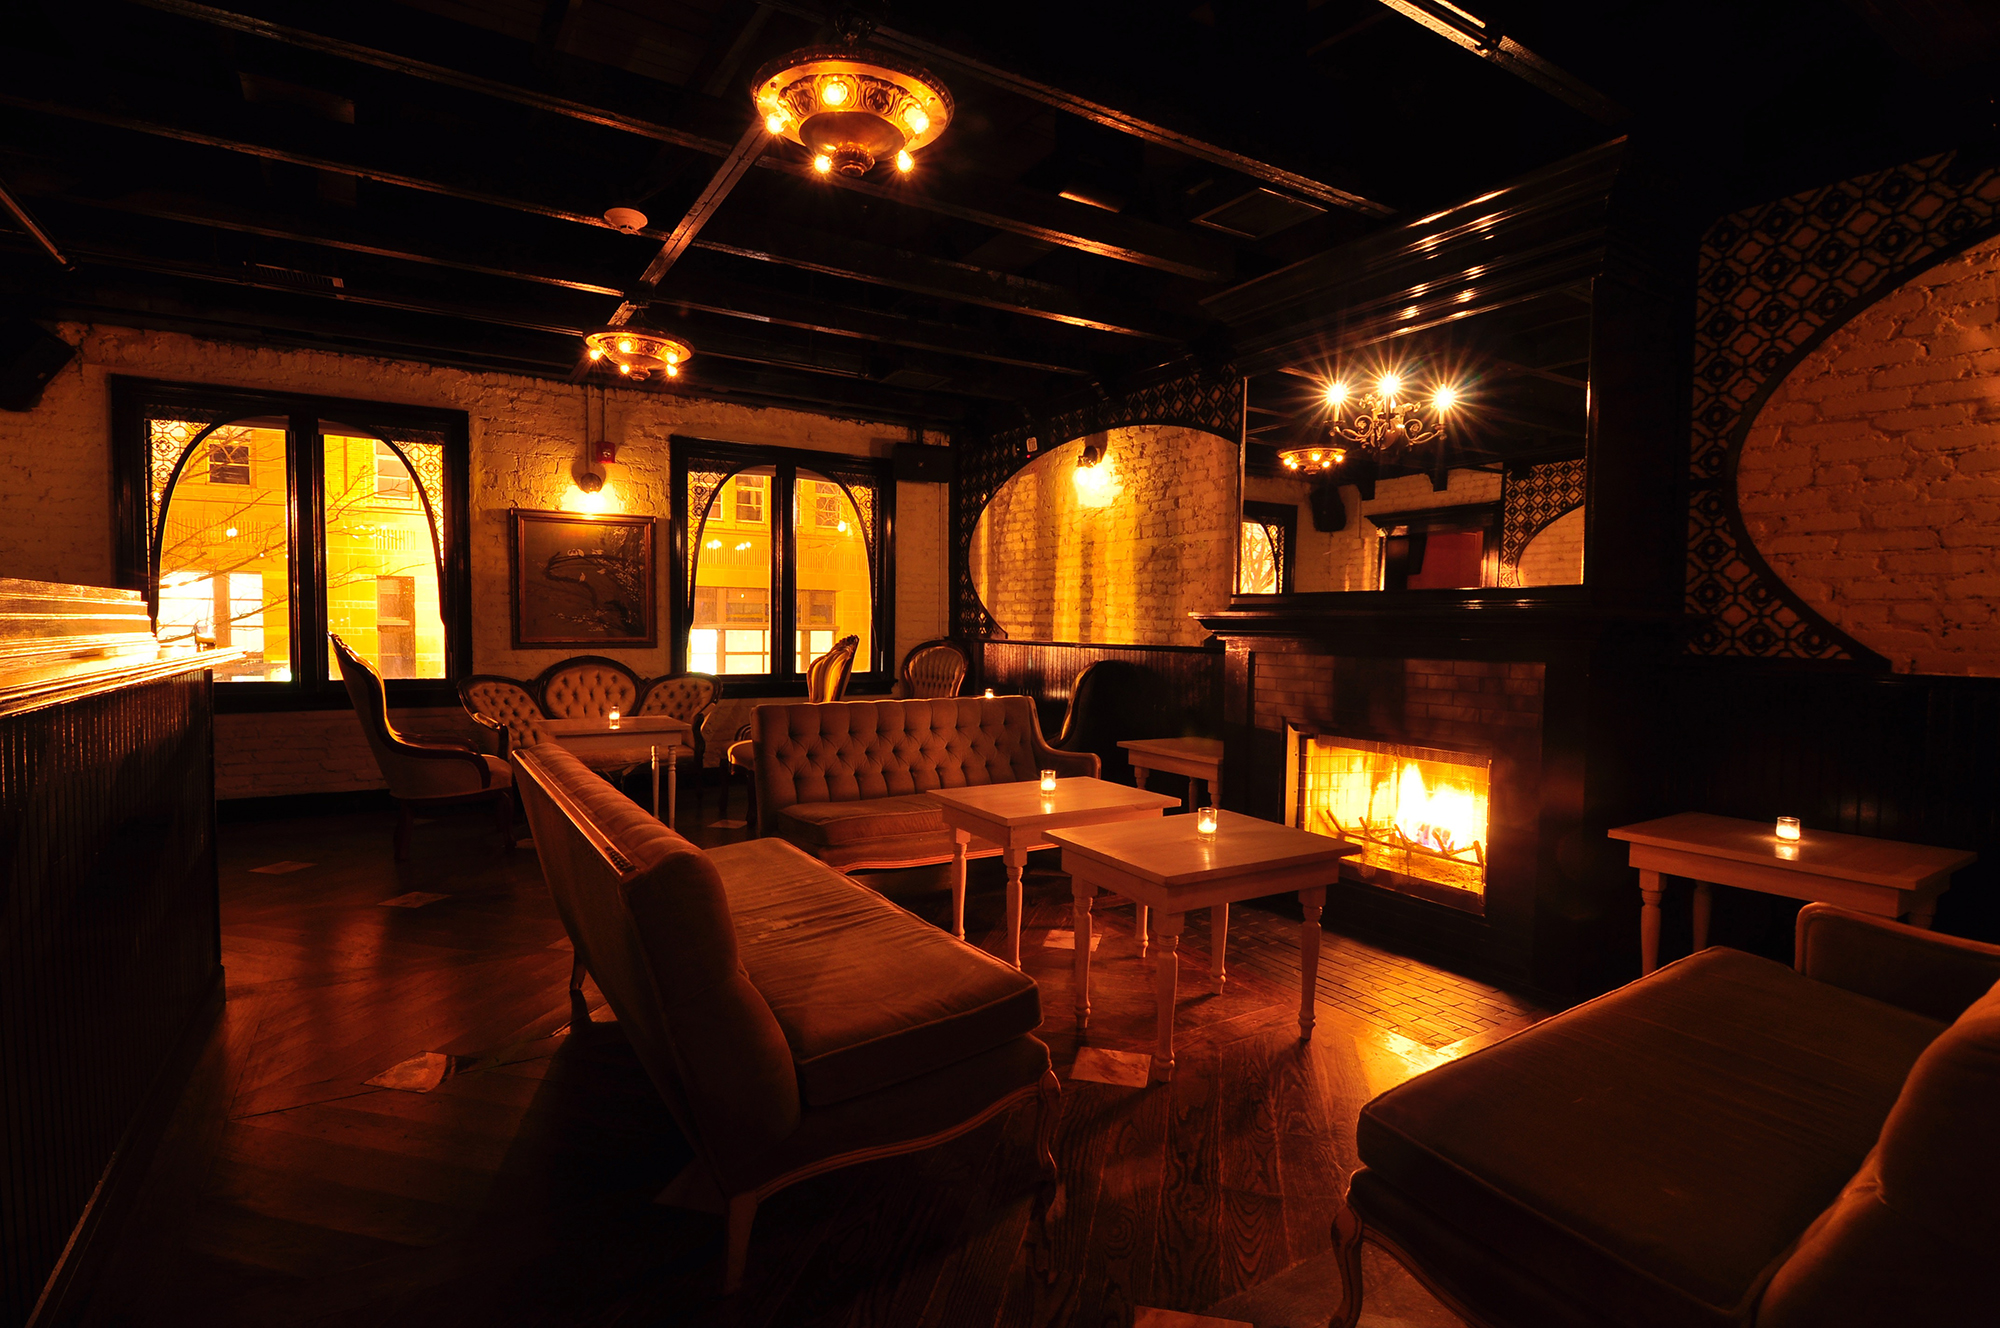 ten tigers seating area with couches dark lighting shot at an angle.jpg